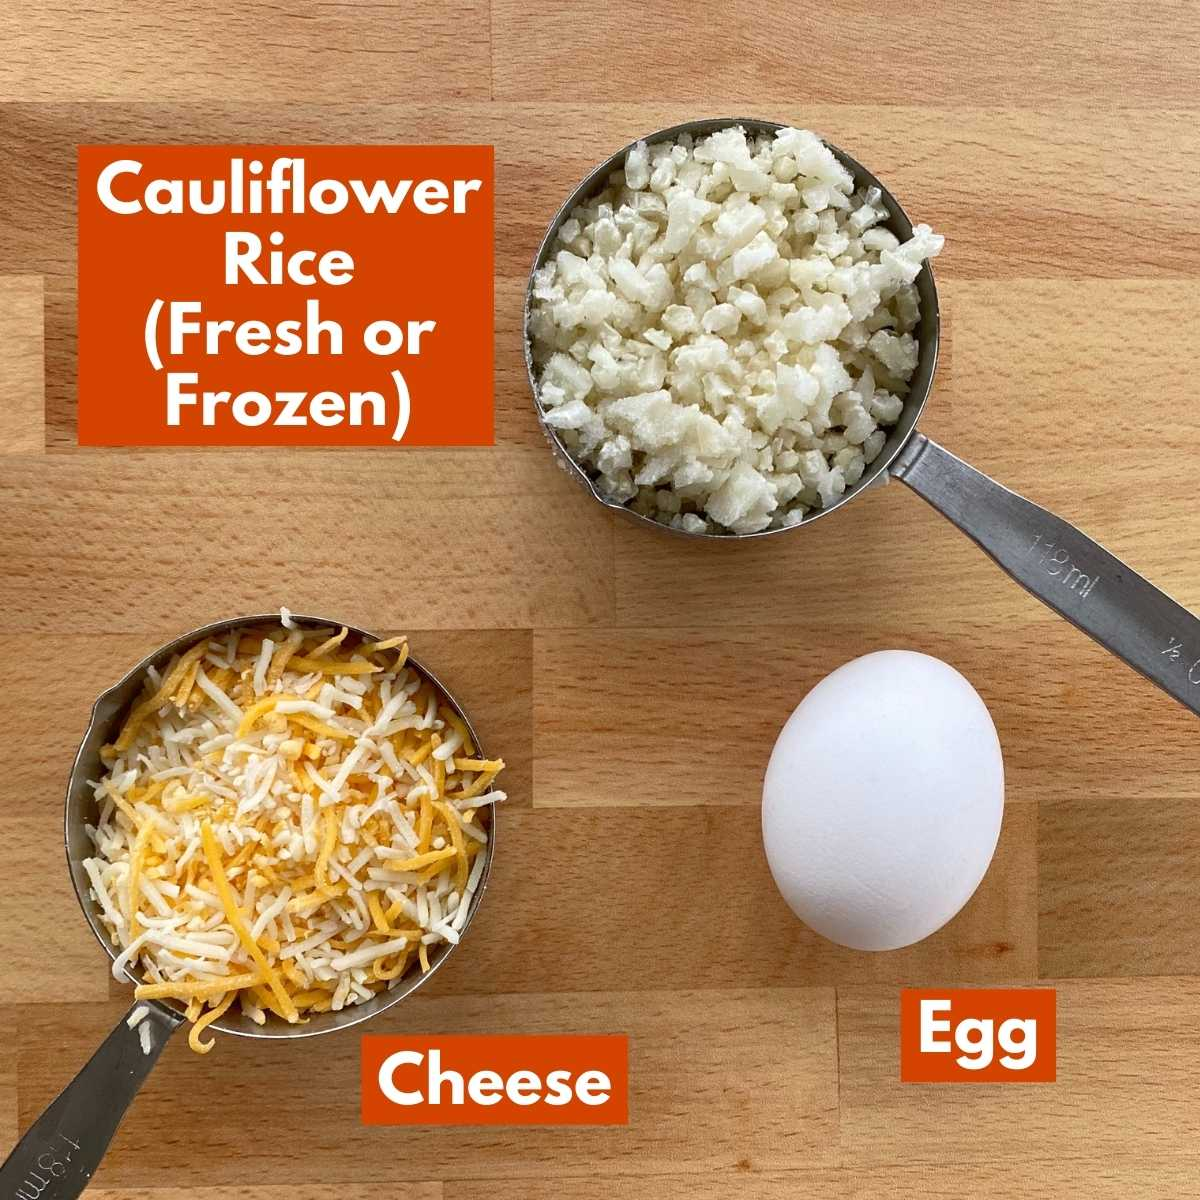 Ingredients to make recipe: cauliflower rice, egg and shredded cheese on cutting board.